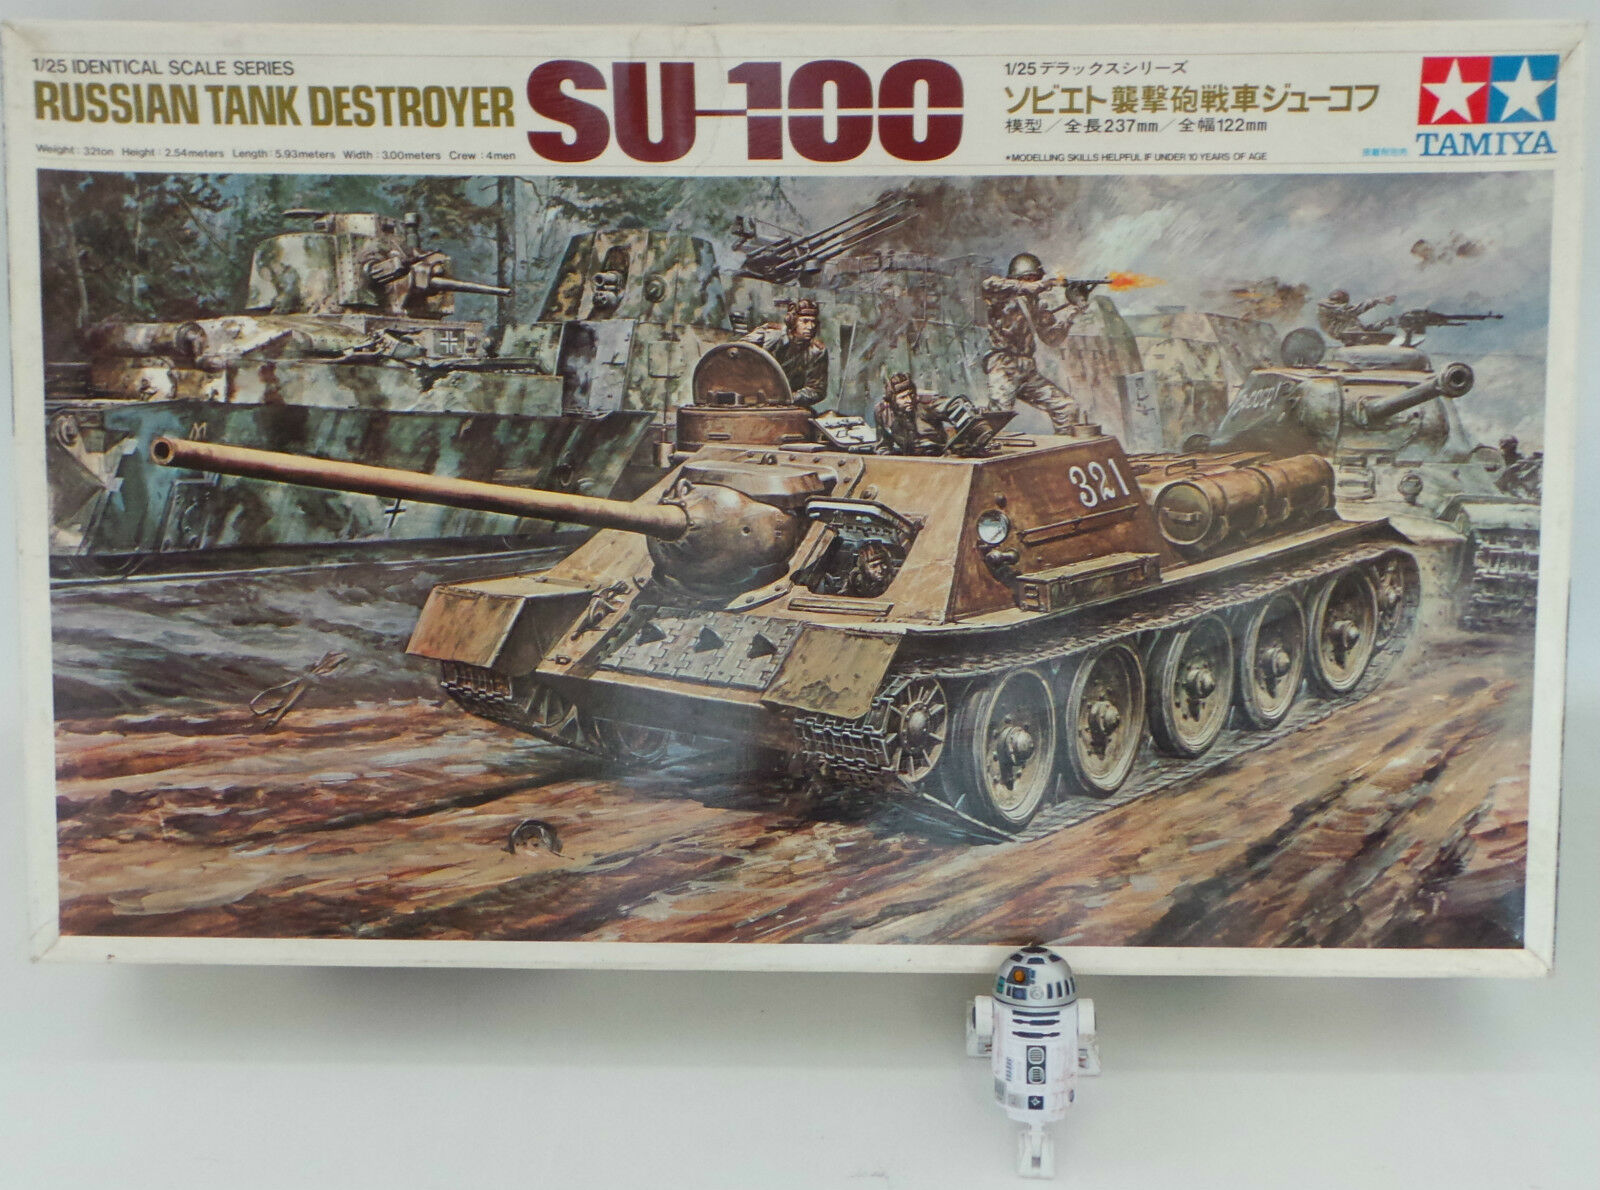 ARMY   RUSSIAN TANK DESTROYER SU-100 MODEL KIT MADE BY TAMIYA - 1 25 SCALE